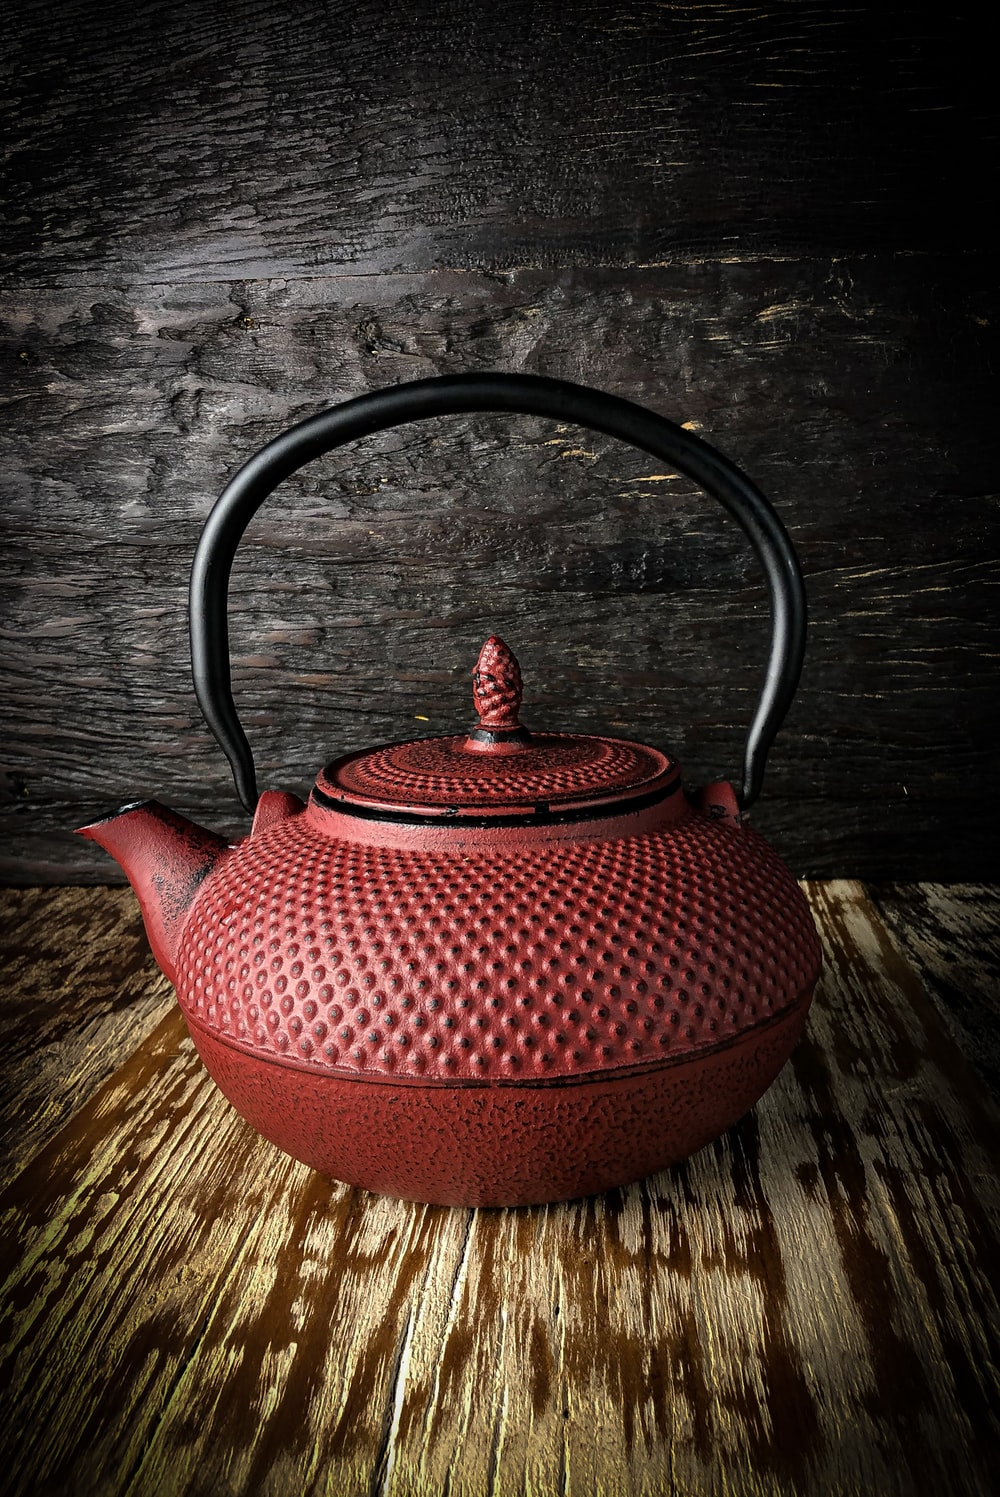 red ceramic teapot on brown wooden table